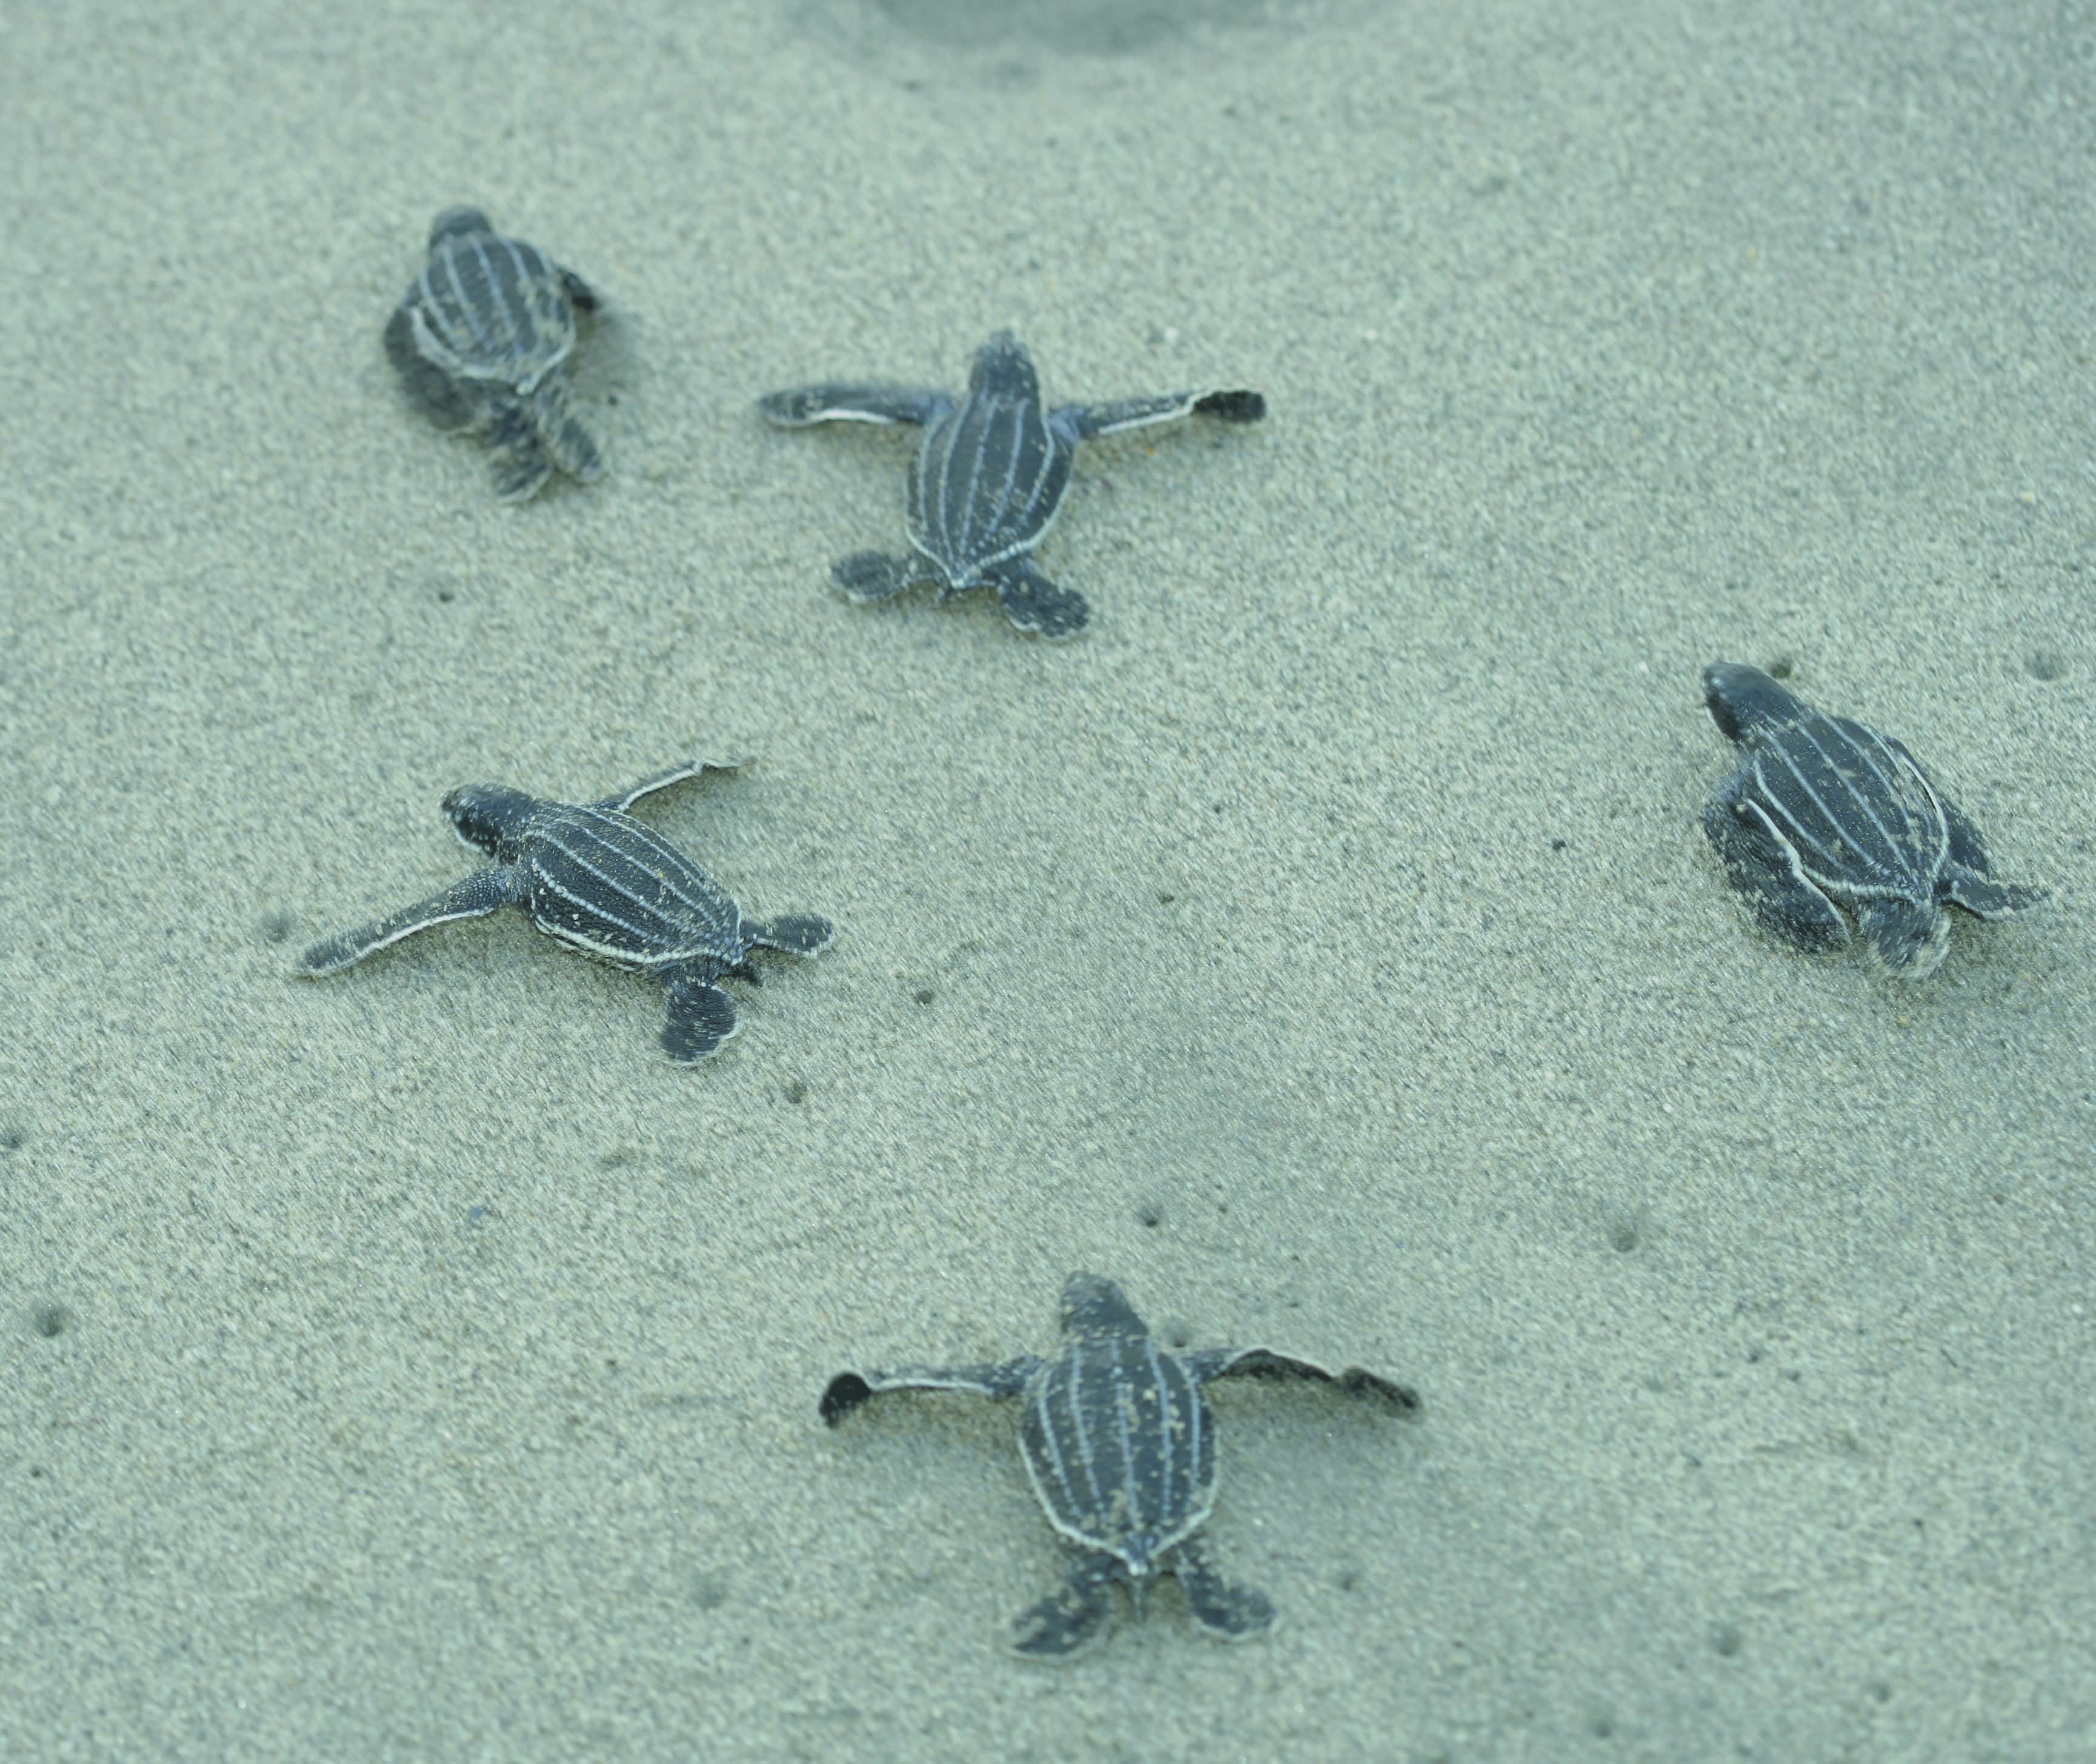 Volunteerism Helps Save the Leatherback Sea Turtle